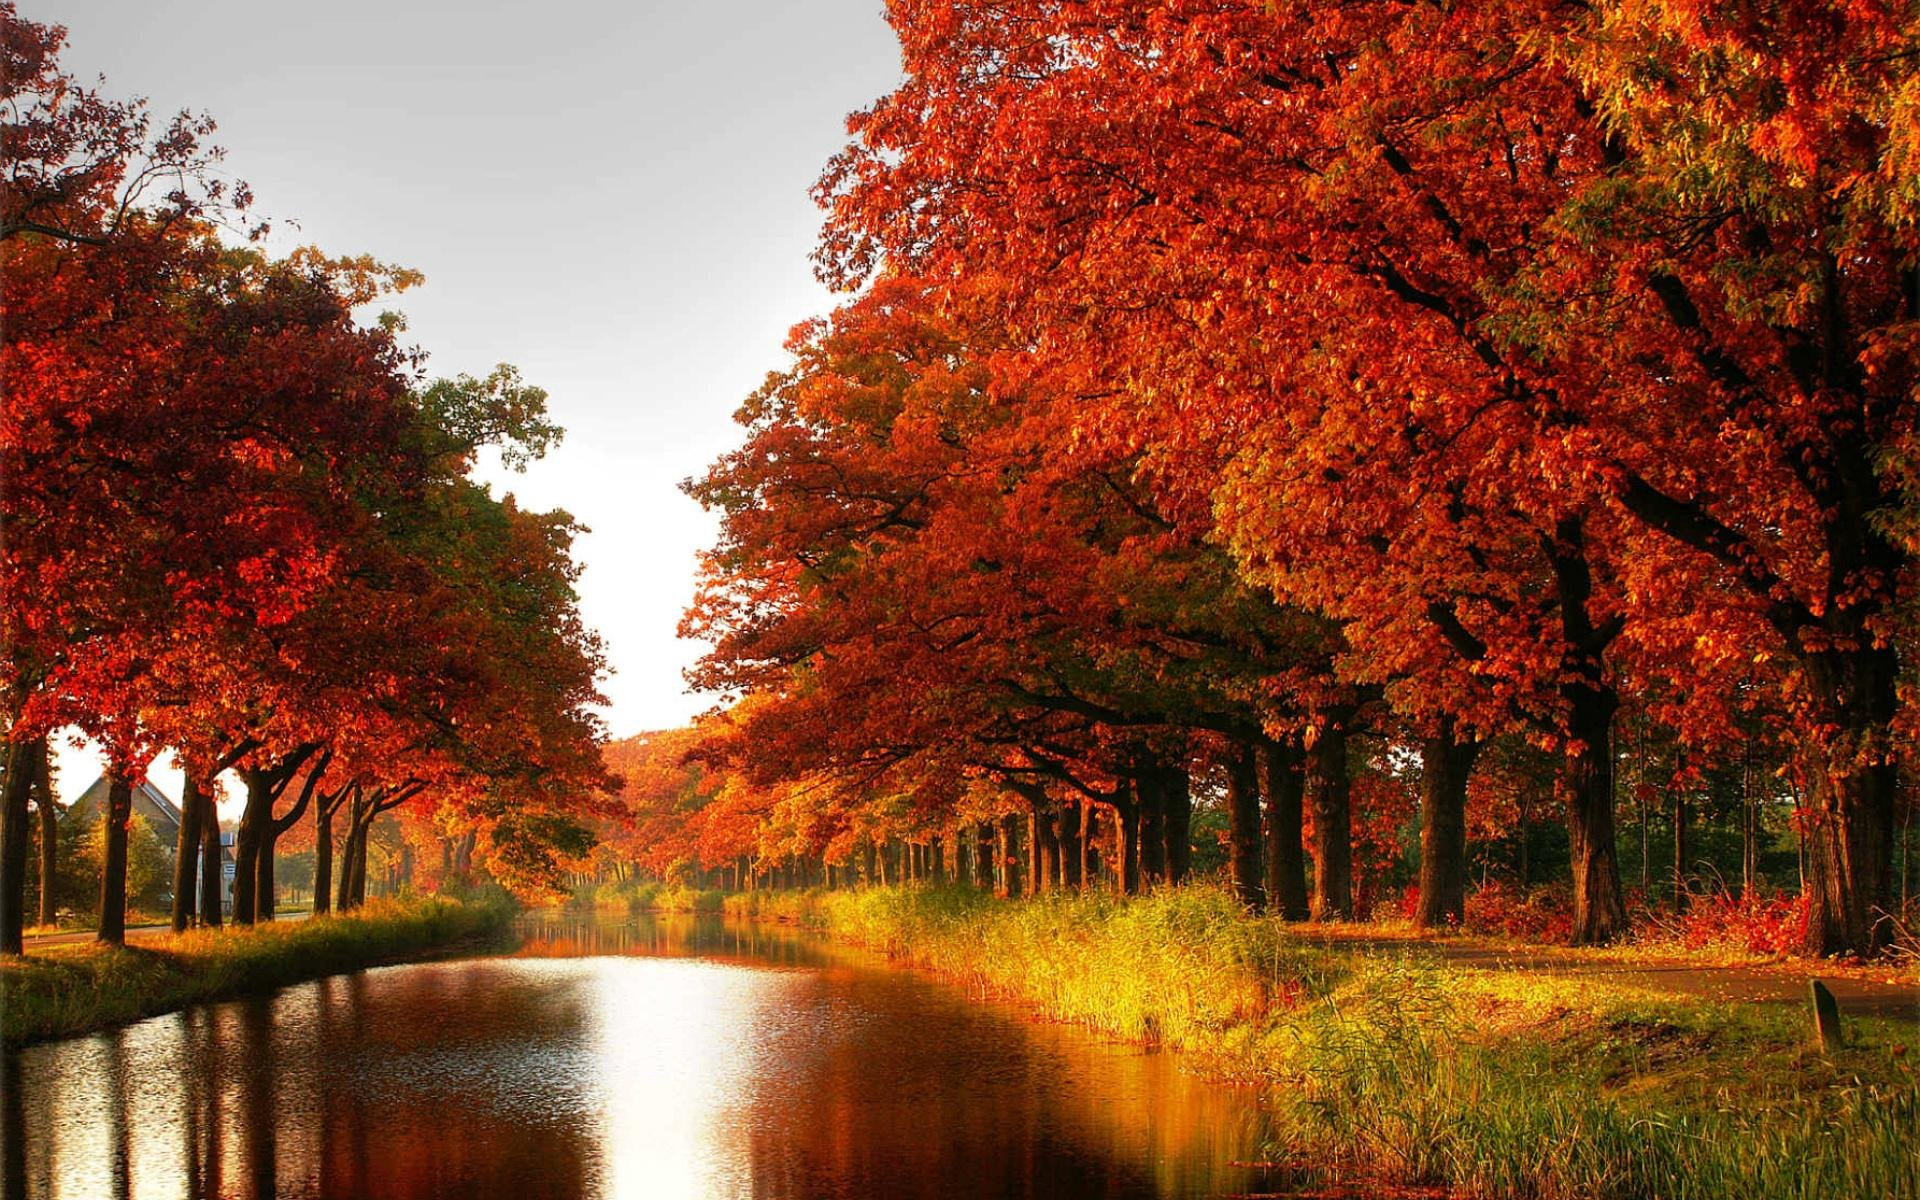 autumn fall tree forest landscape nature leaves wallpaper 1920x1200 812532 wallpaperup